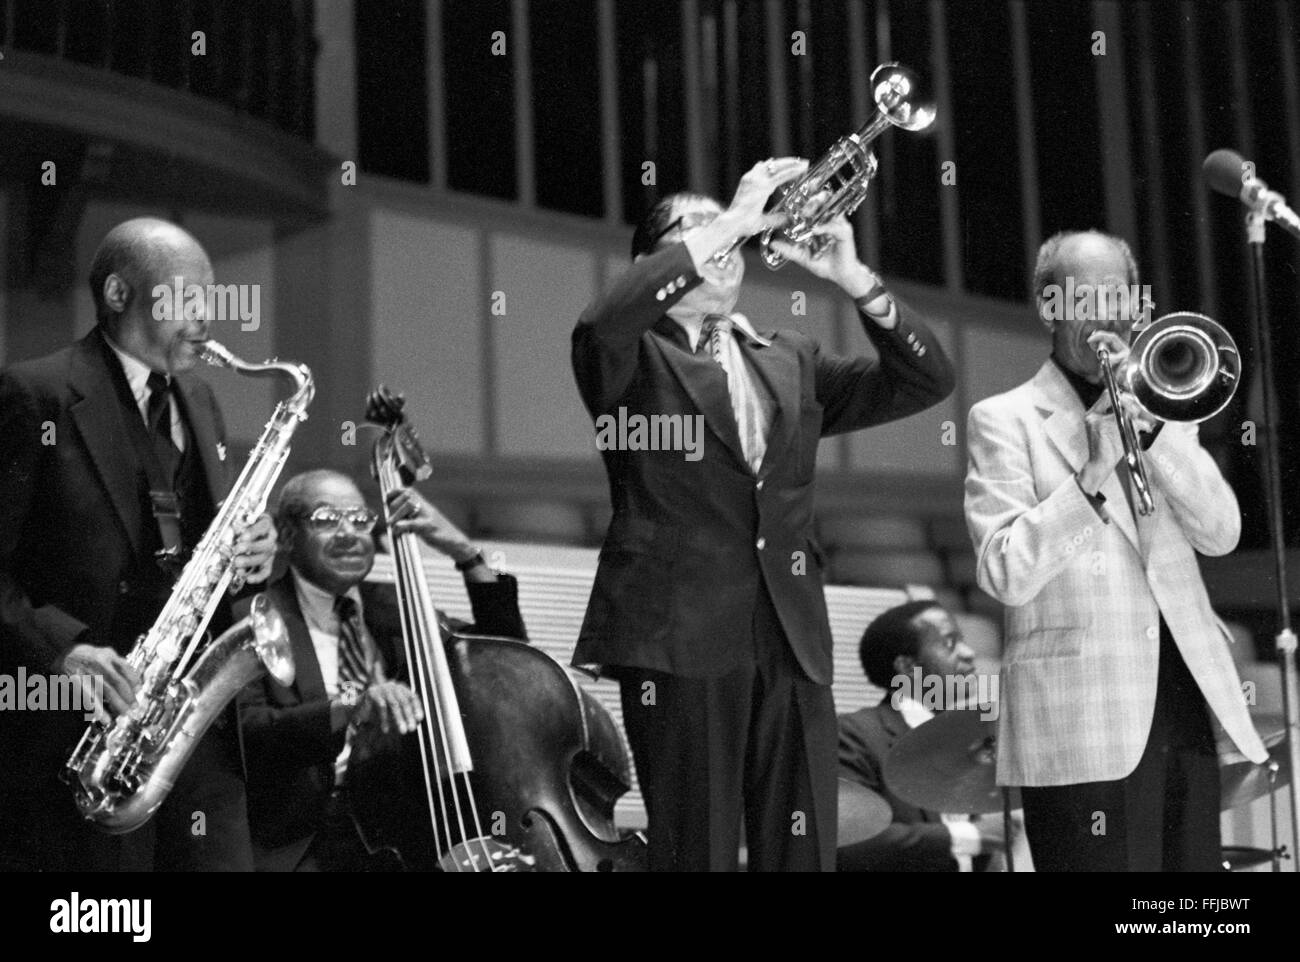 From left to right: Budd Johnson, Al Hall, Doc Cheatham, Jackie Williams, and Vic Dickenson. This concert took place - Stock Image